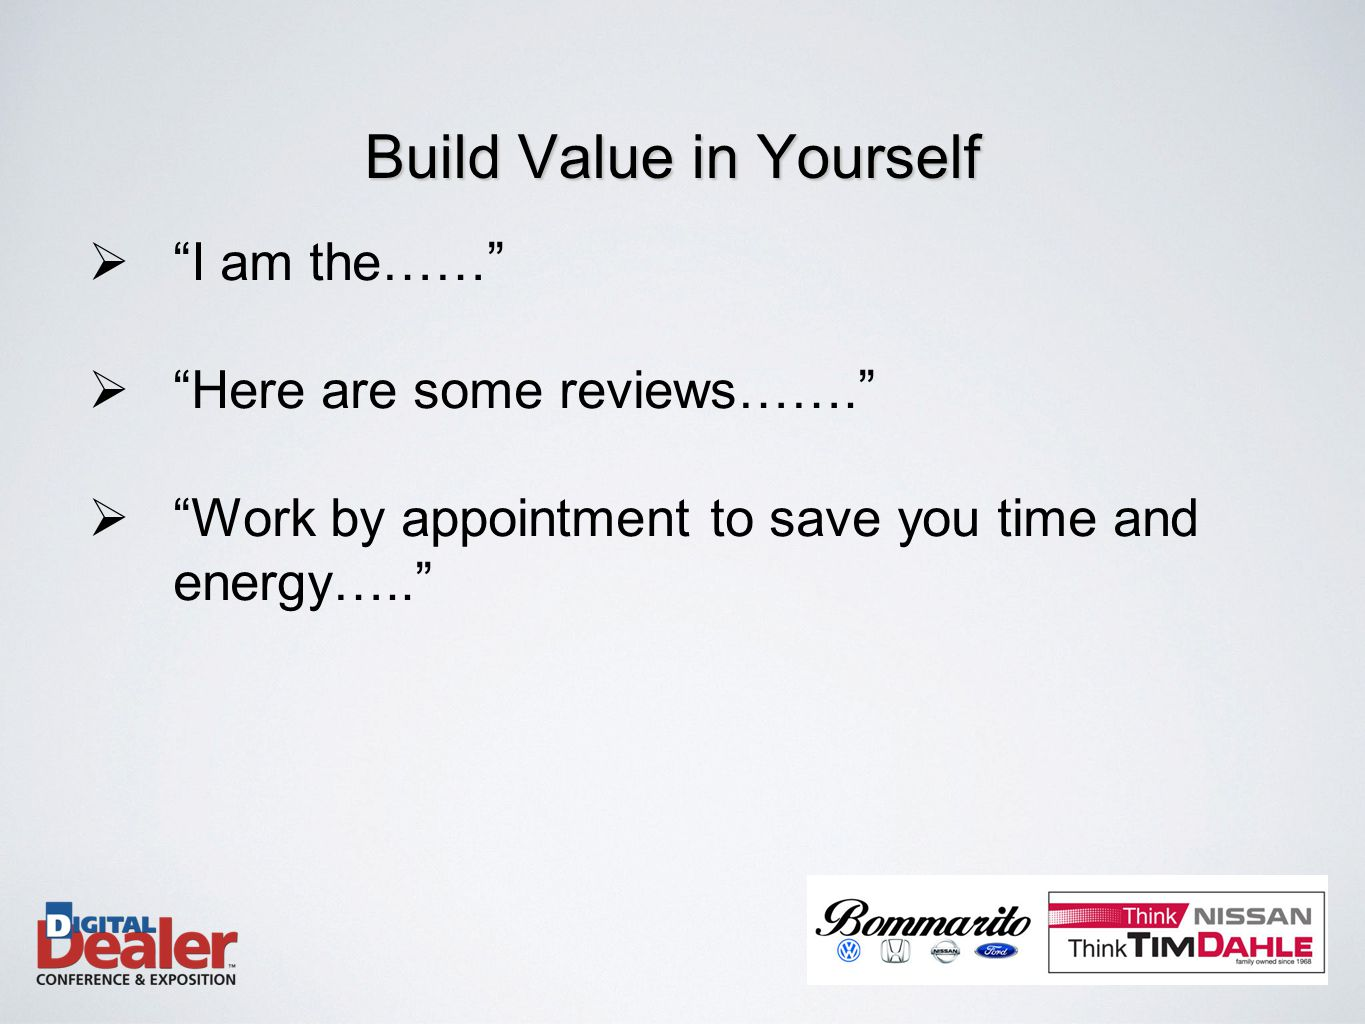  I am the……  Here are some reviews…….  Work by appointment to save you time and energy….. Build Value in Yourself